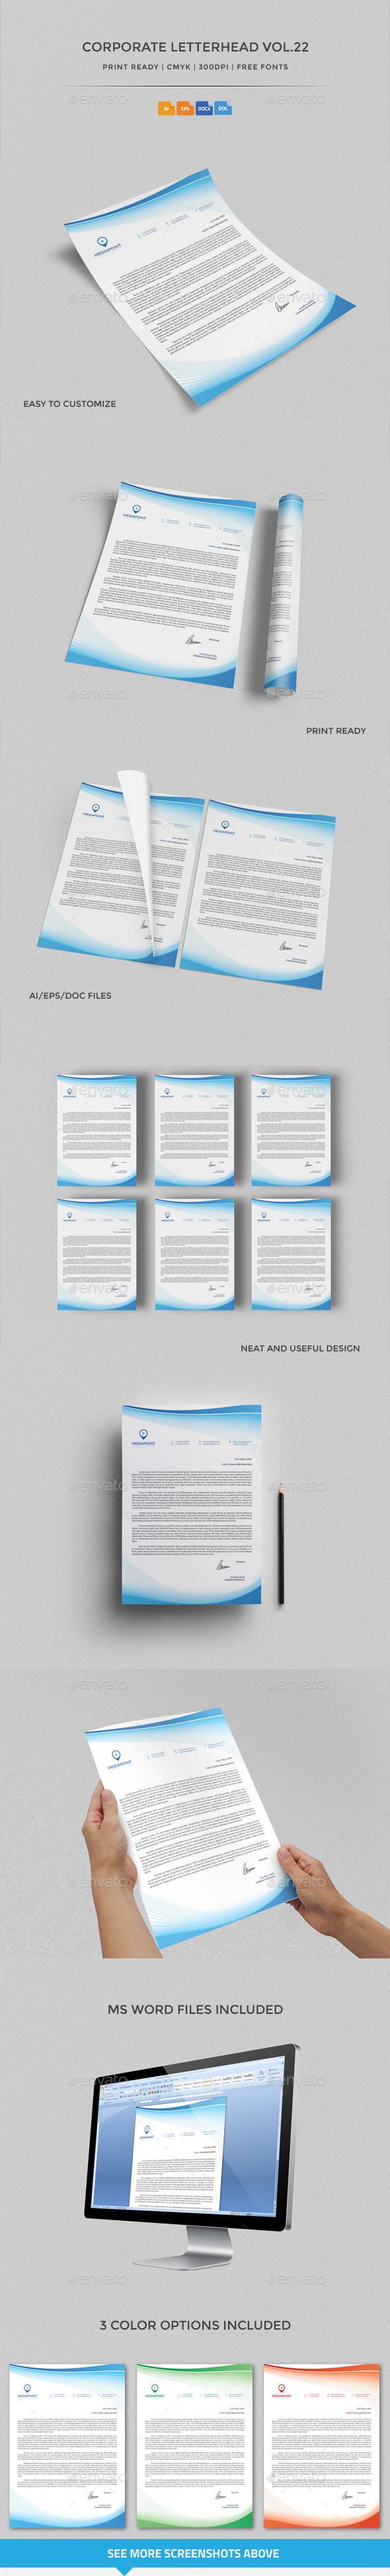 GraphicRiver Corporate Letterhead vol.22 with MS Word DOC DOCX 10175560